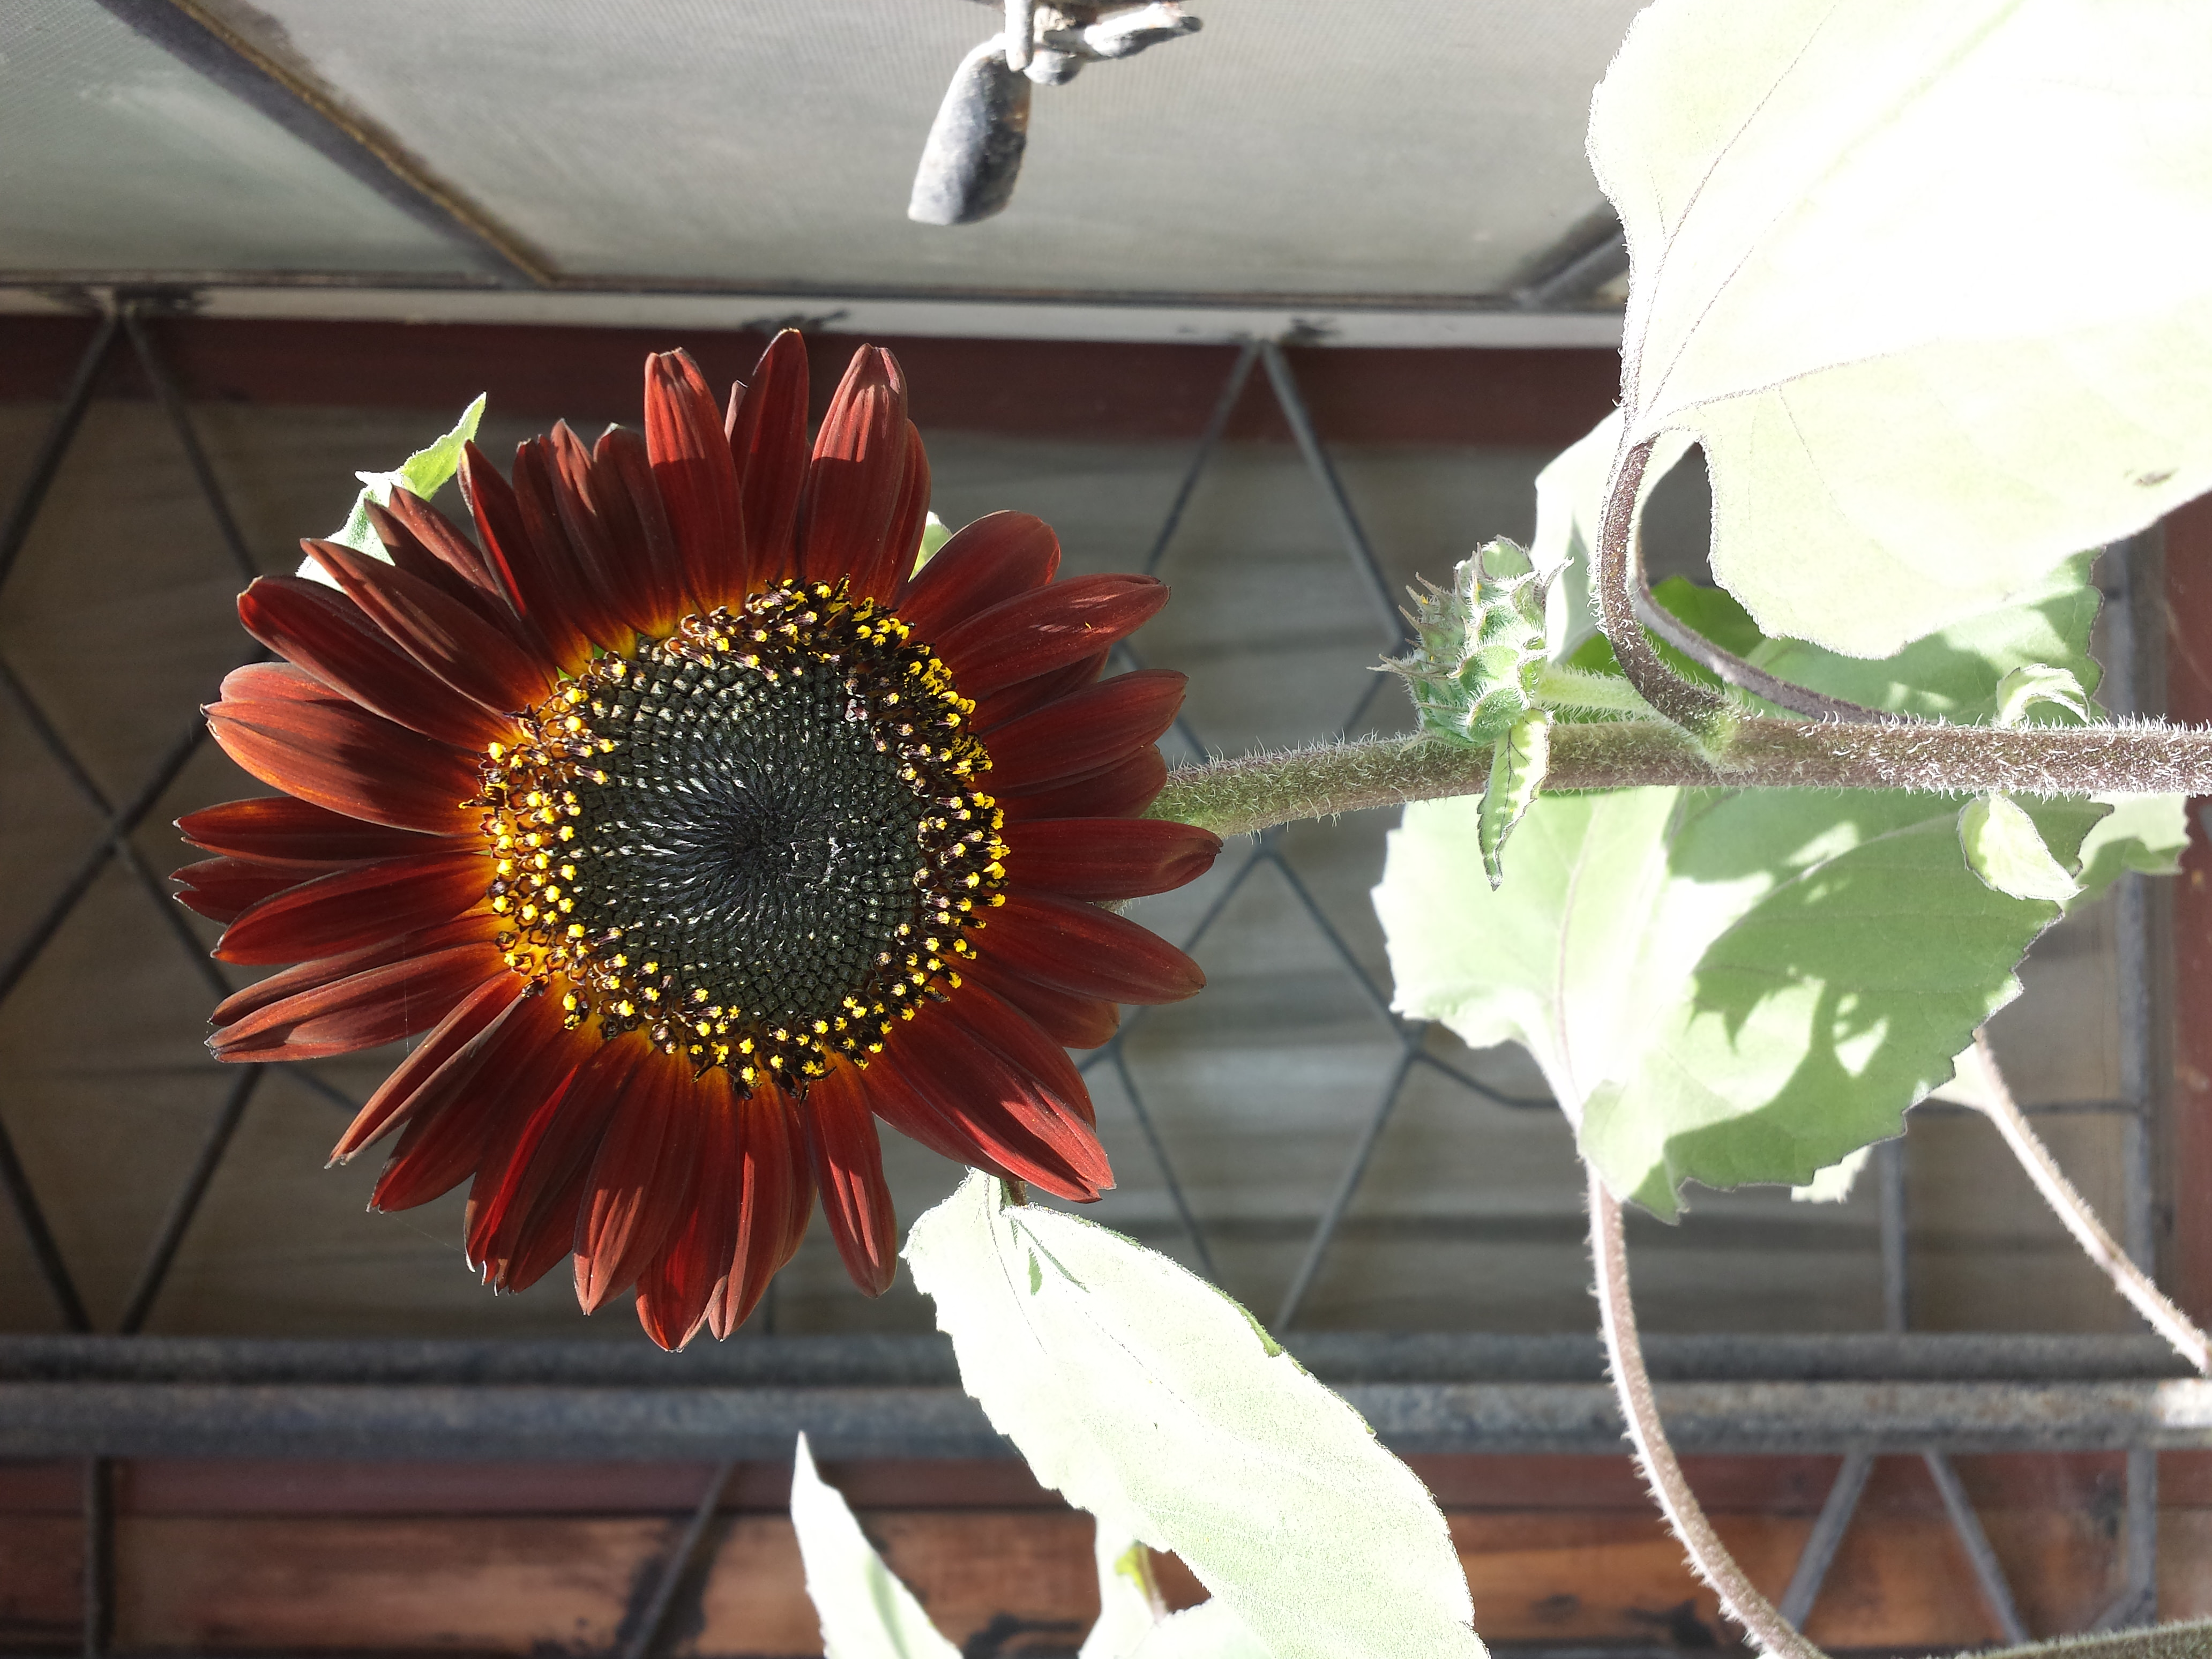 Update 13-9-15: It bloomed out just fine! Look at that beauty.